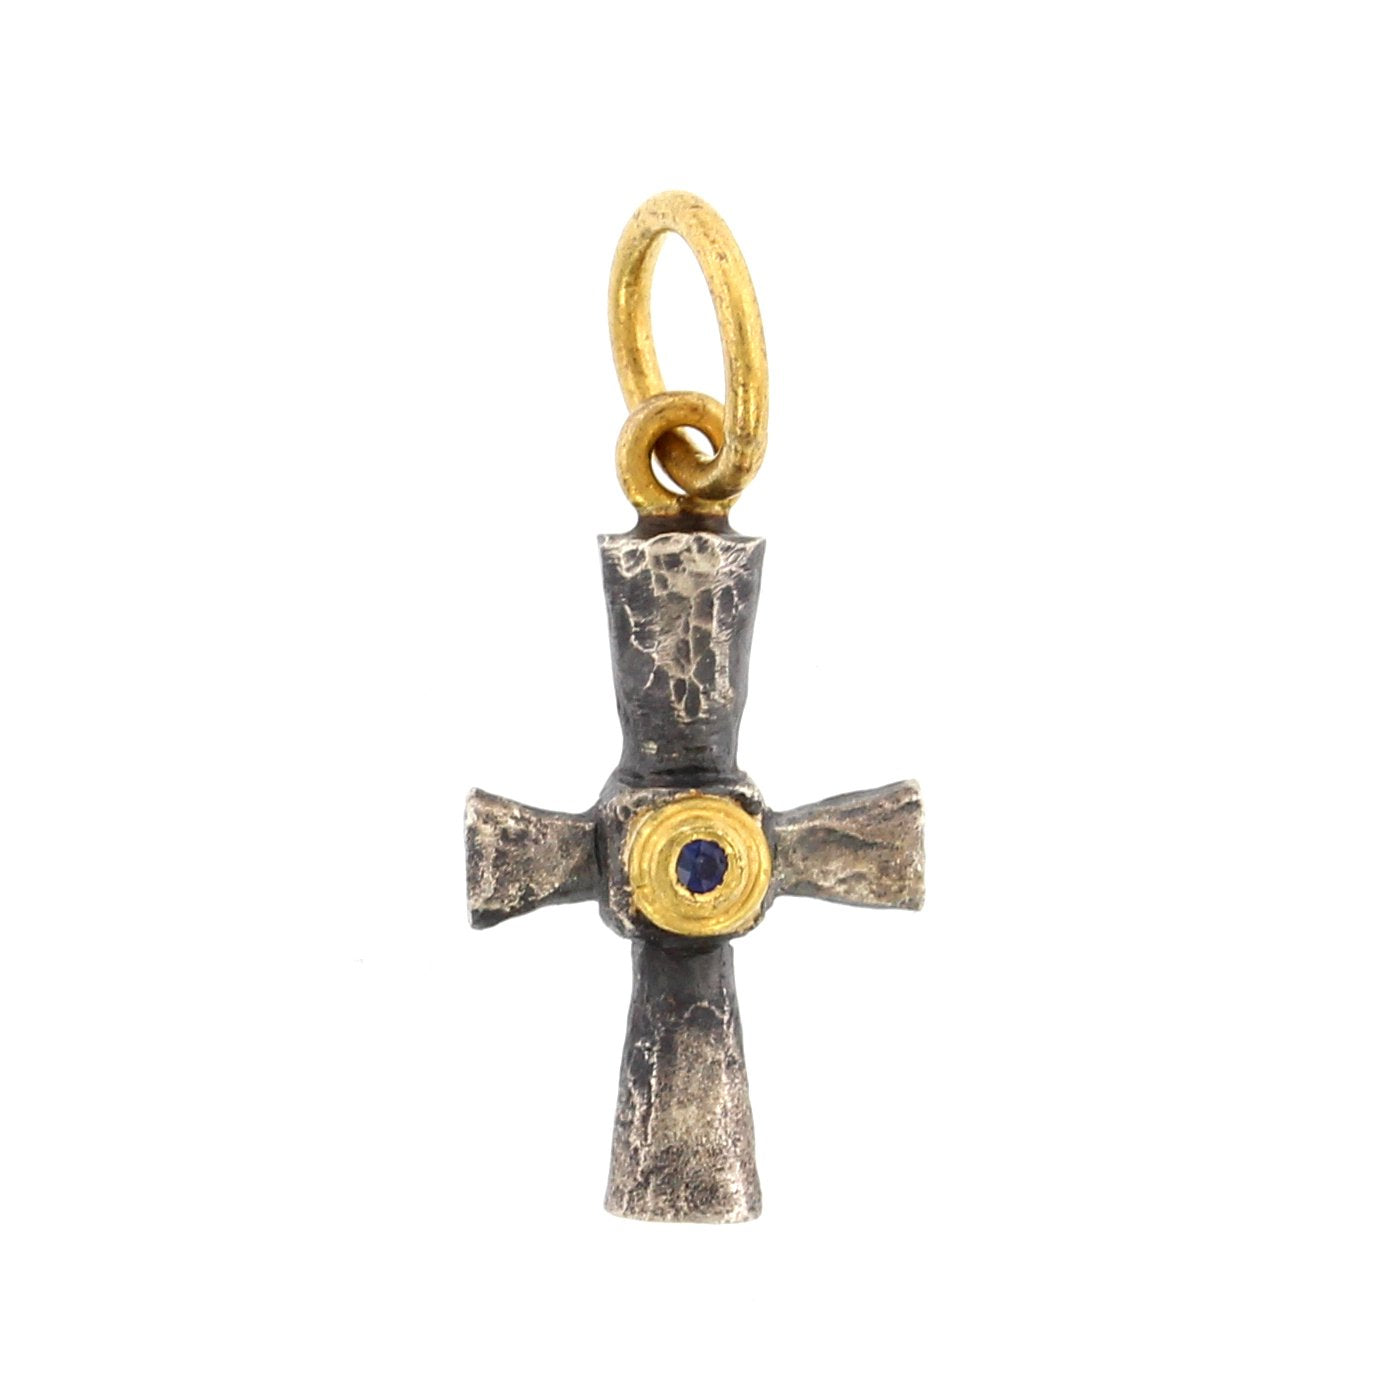 24K Yellow Gold and Sterling Silver Byzantine Cross Charm